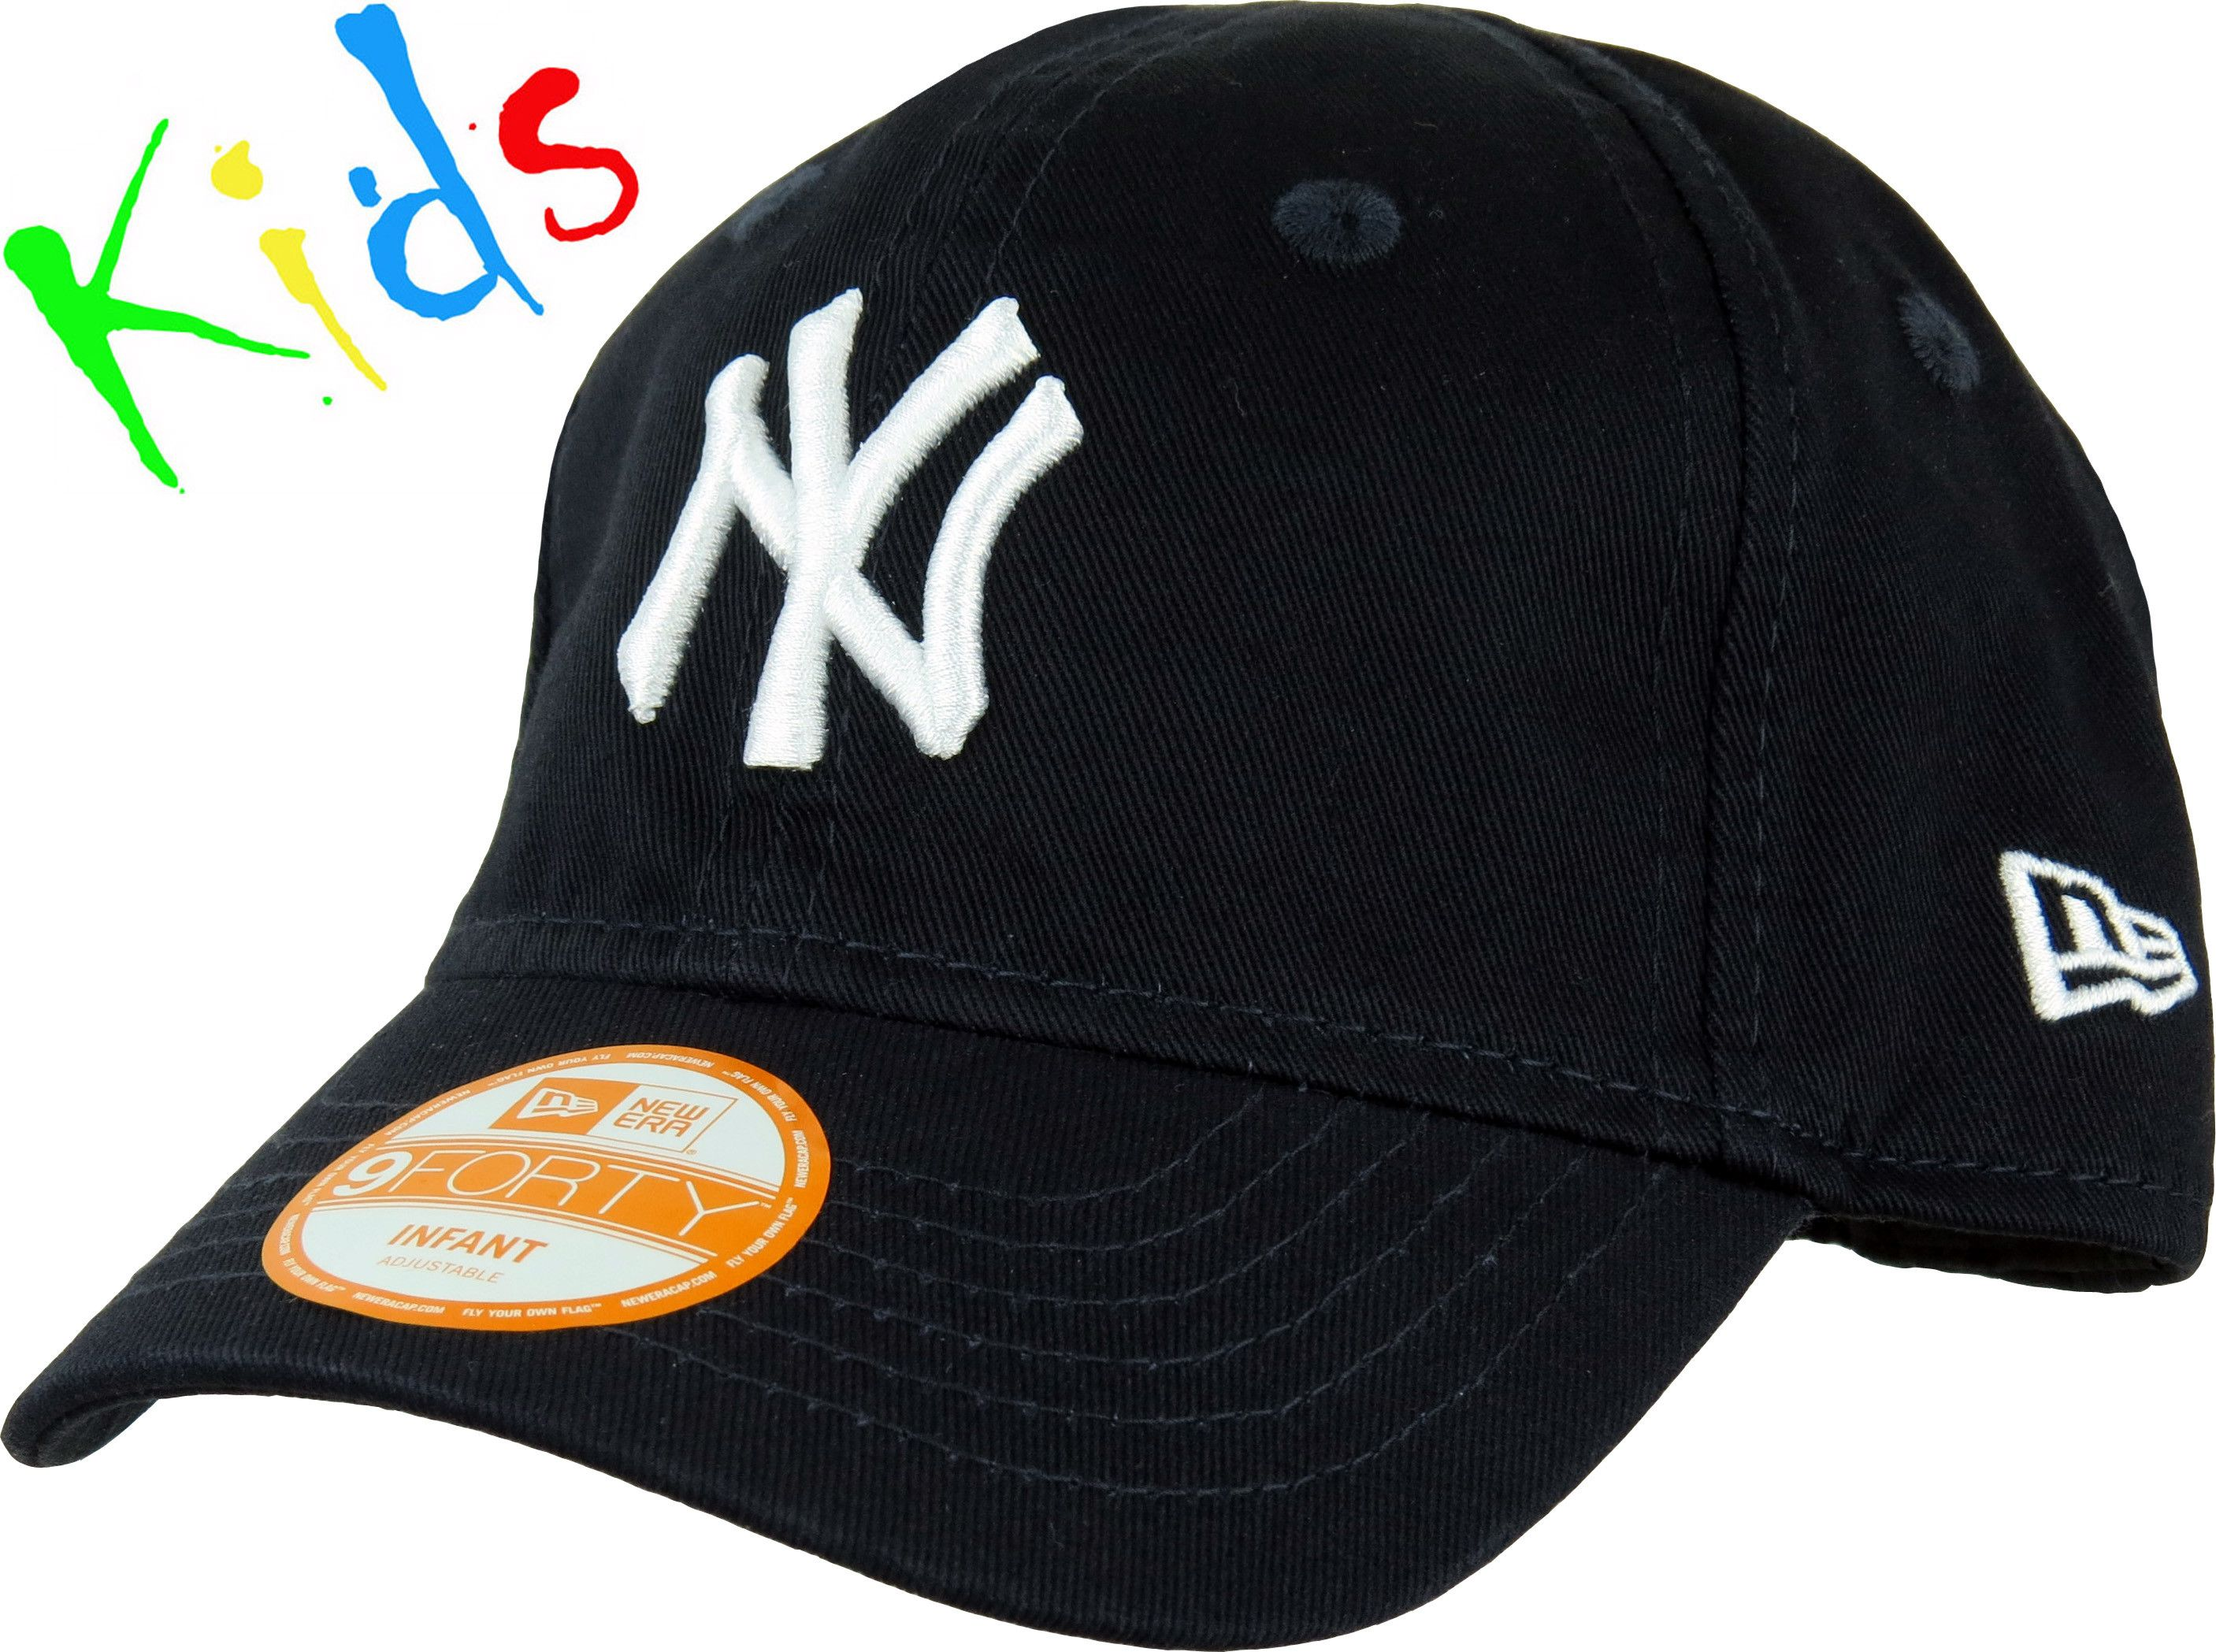 ef2b5a419009e New Era 940 NY Yankees Infants Stretch Fit Cap. Navy with the NY front  logo. Stretch fit fixed rear strap. Recommended for ages 0 - 2 years